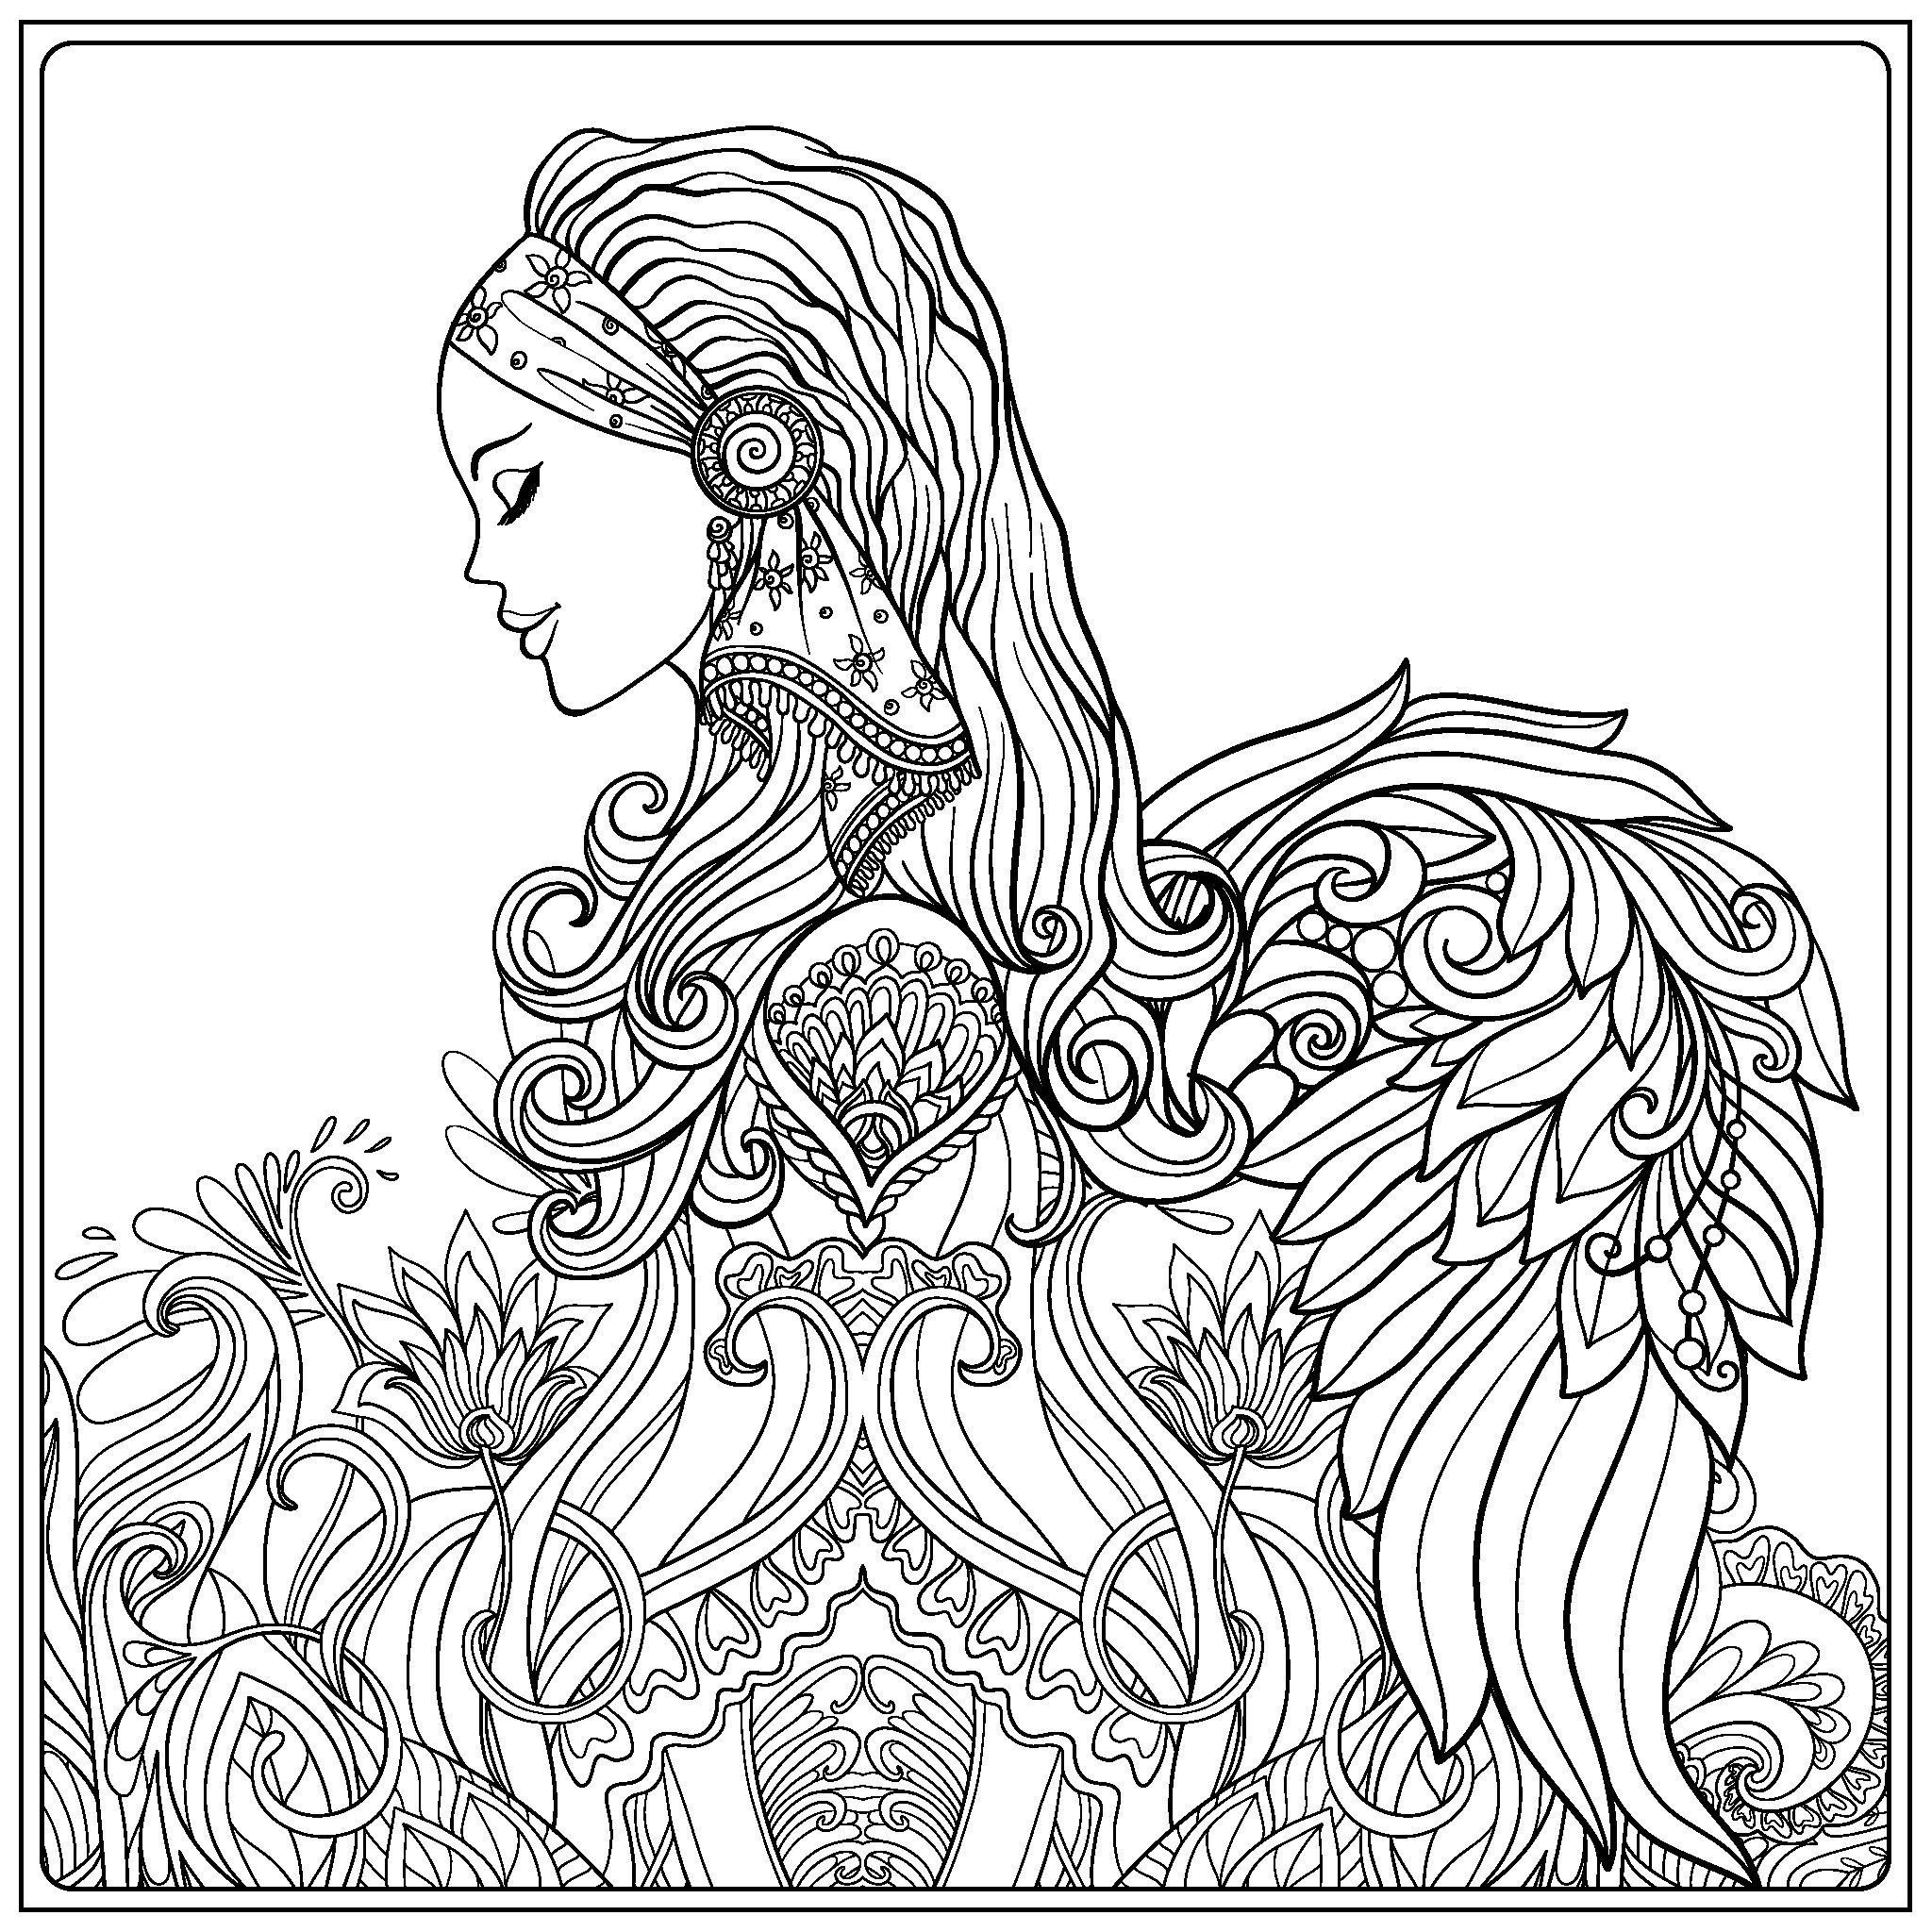 Beautiful angel coloring page | Coloring pages | Pinterest | Angel ...